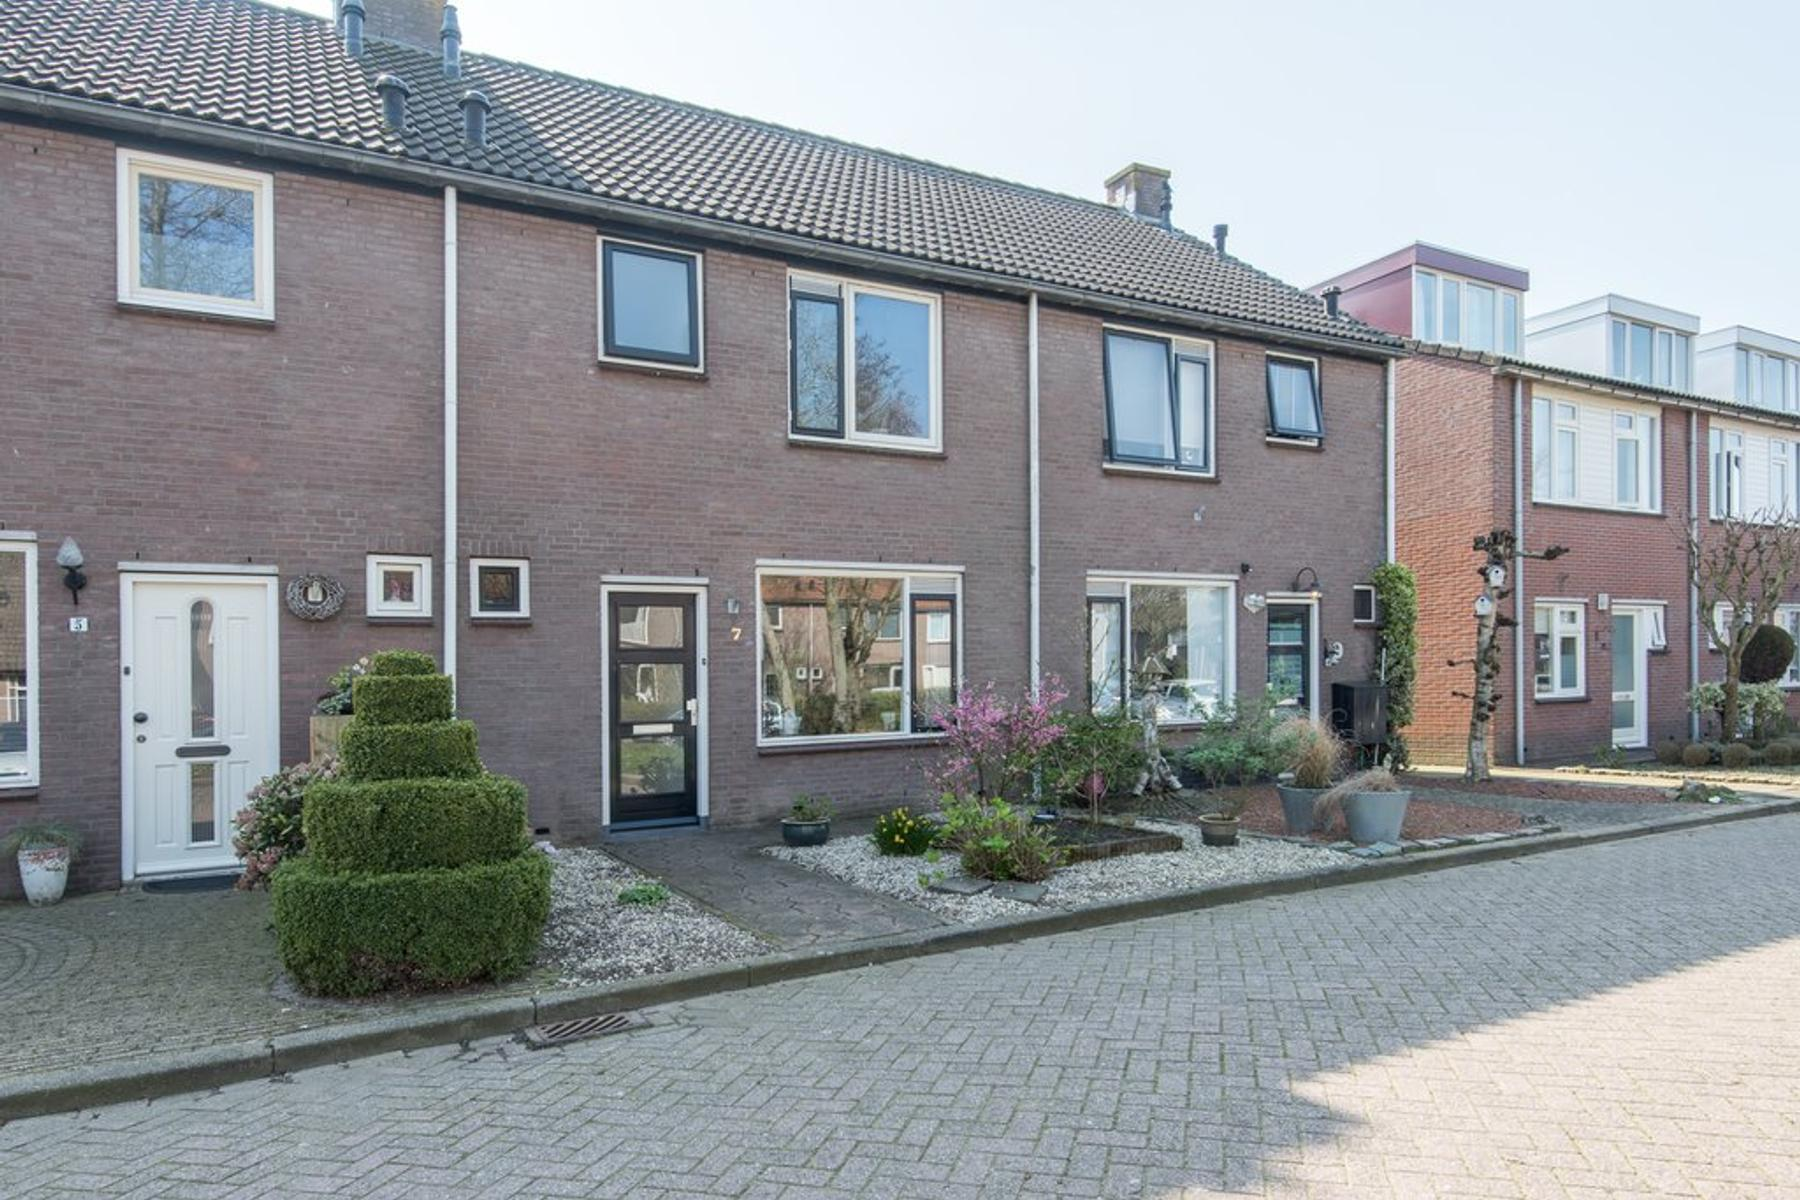 Korenbloemstraat 7 in Hoogblokland 4221 LA